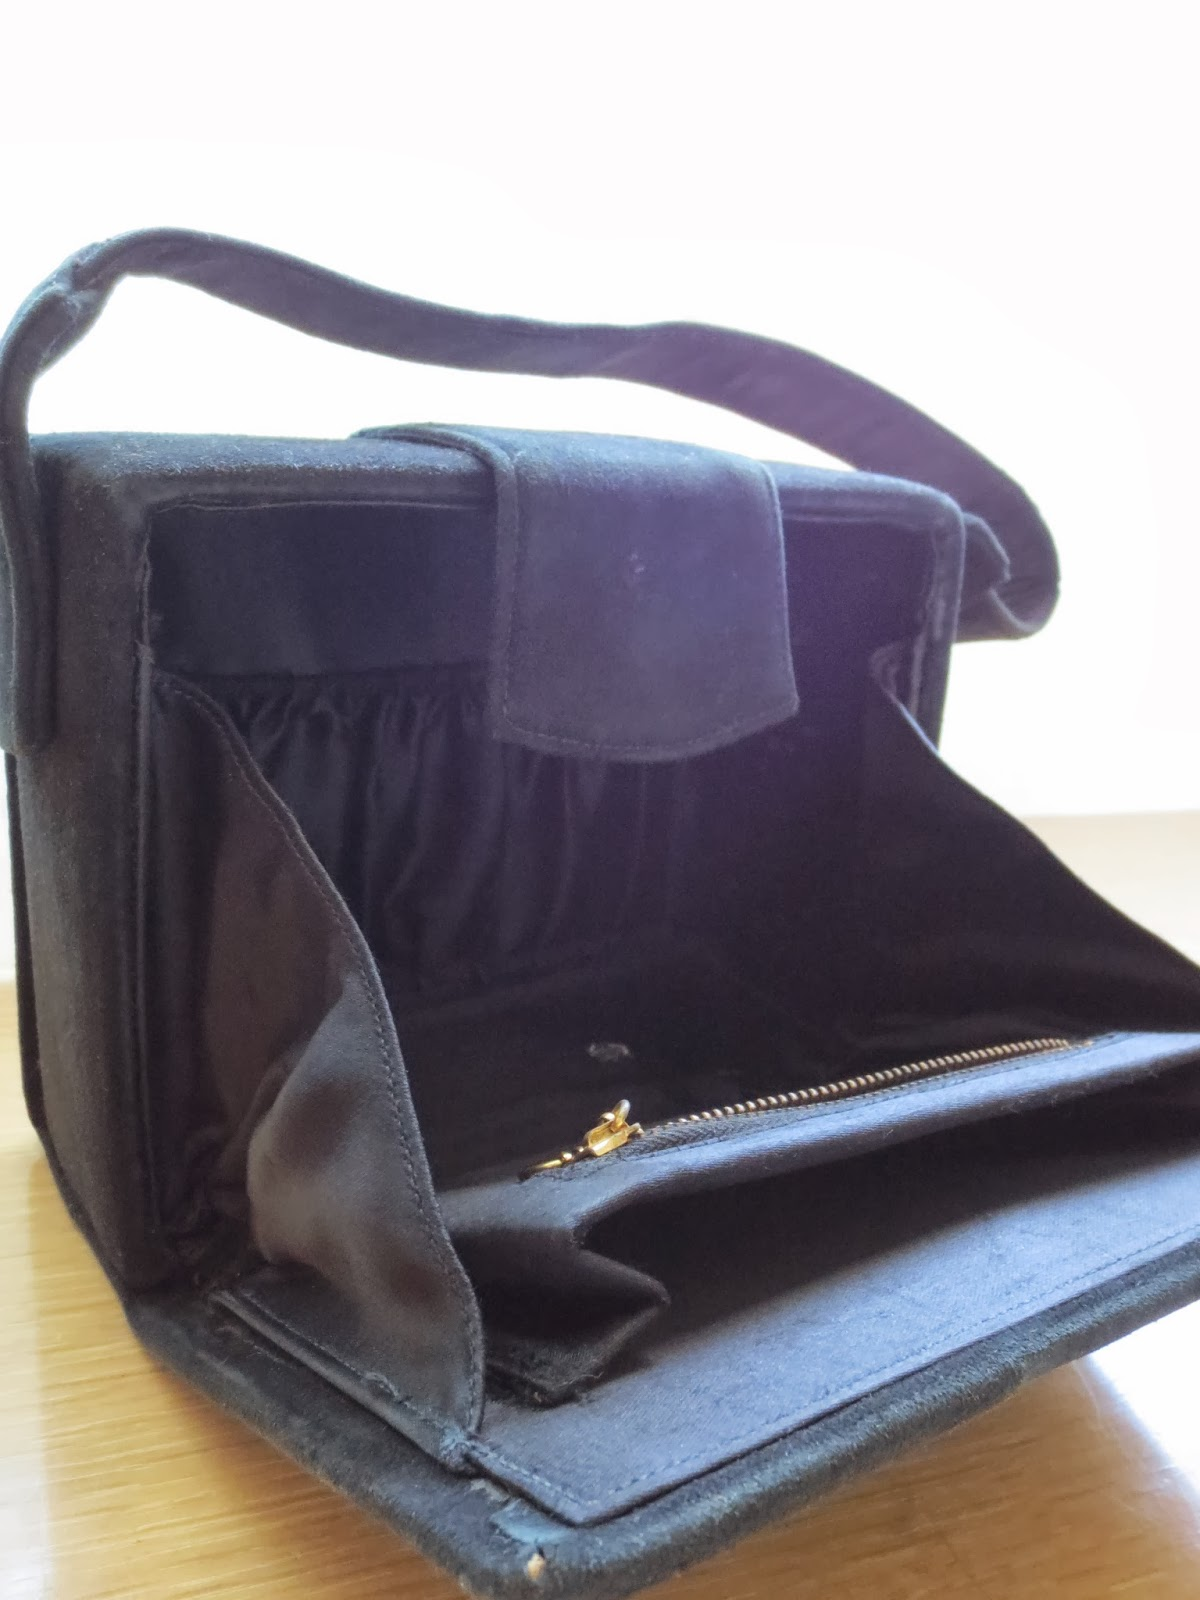 1940s black suede box purse interior via Brentwood Lane